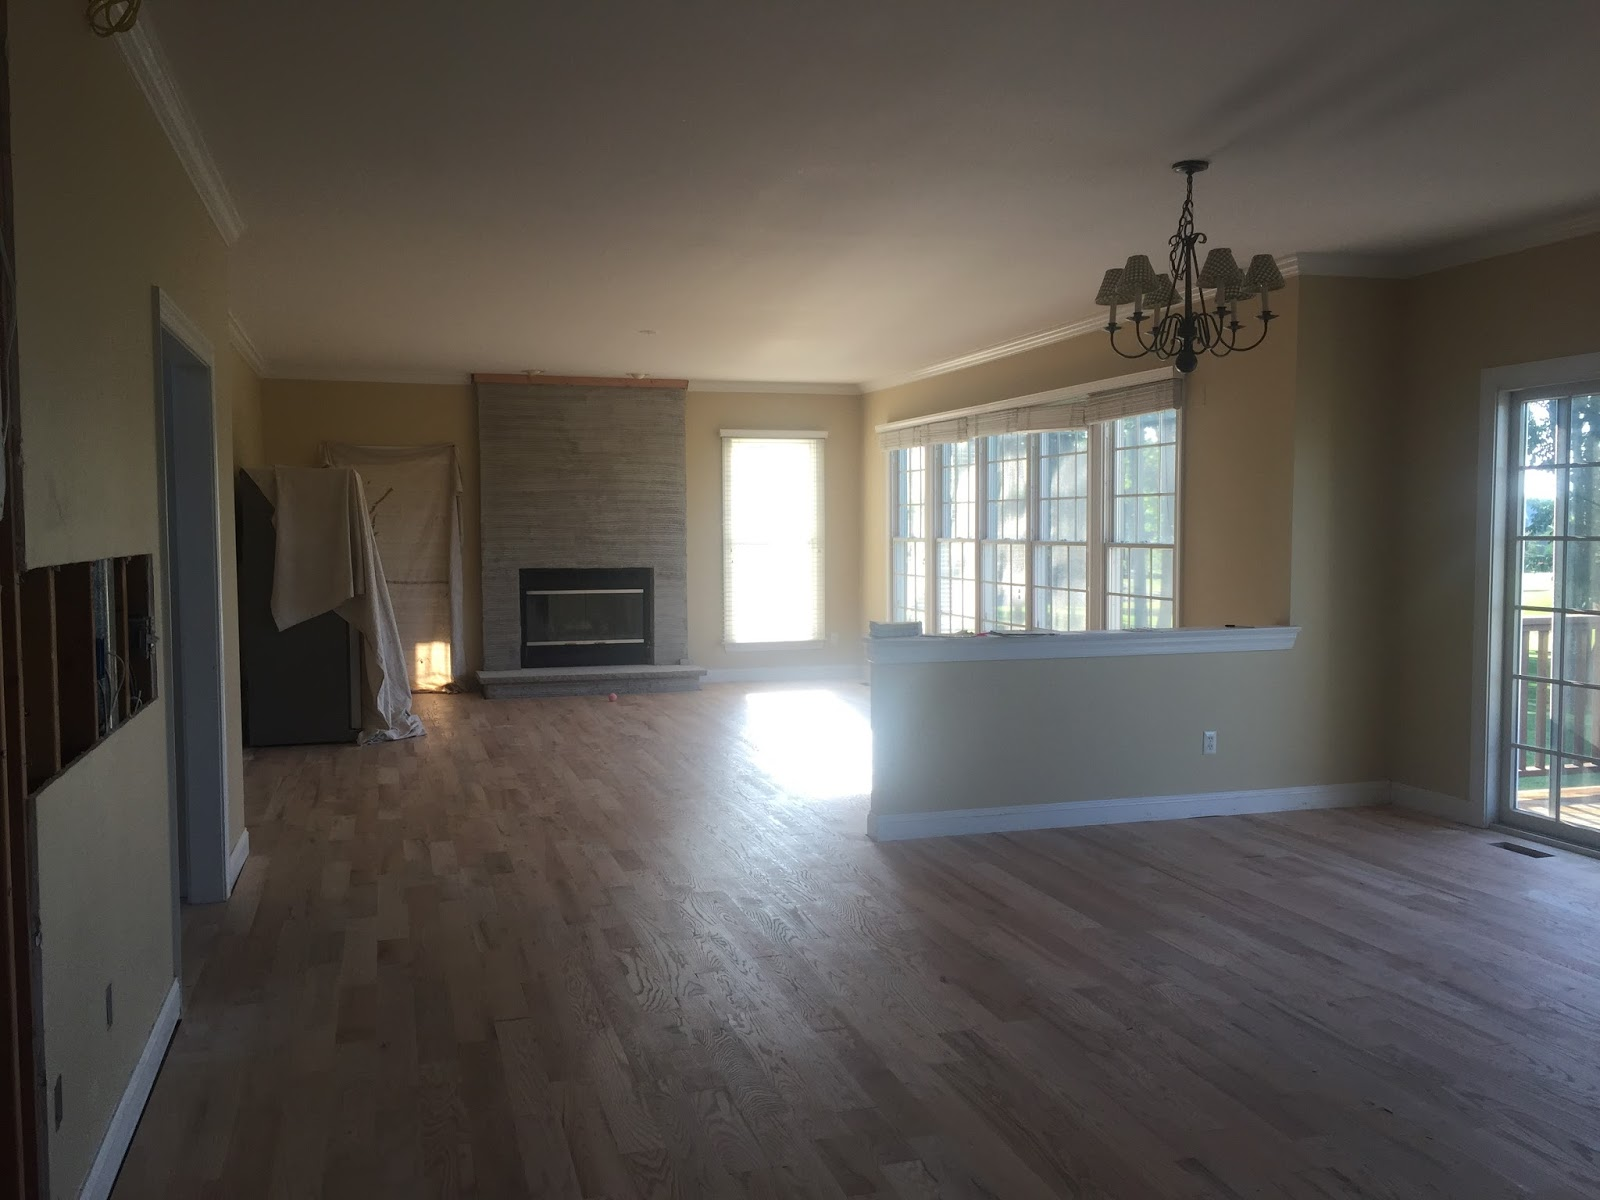 View into family room during renovation